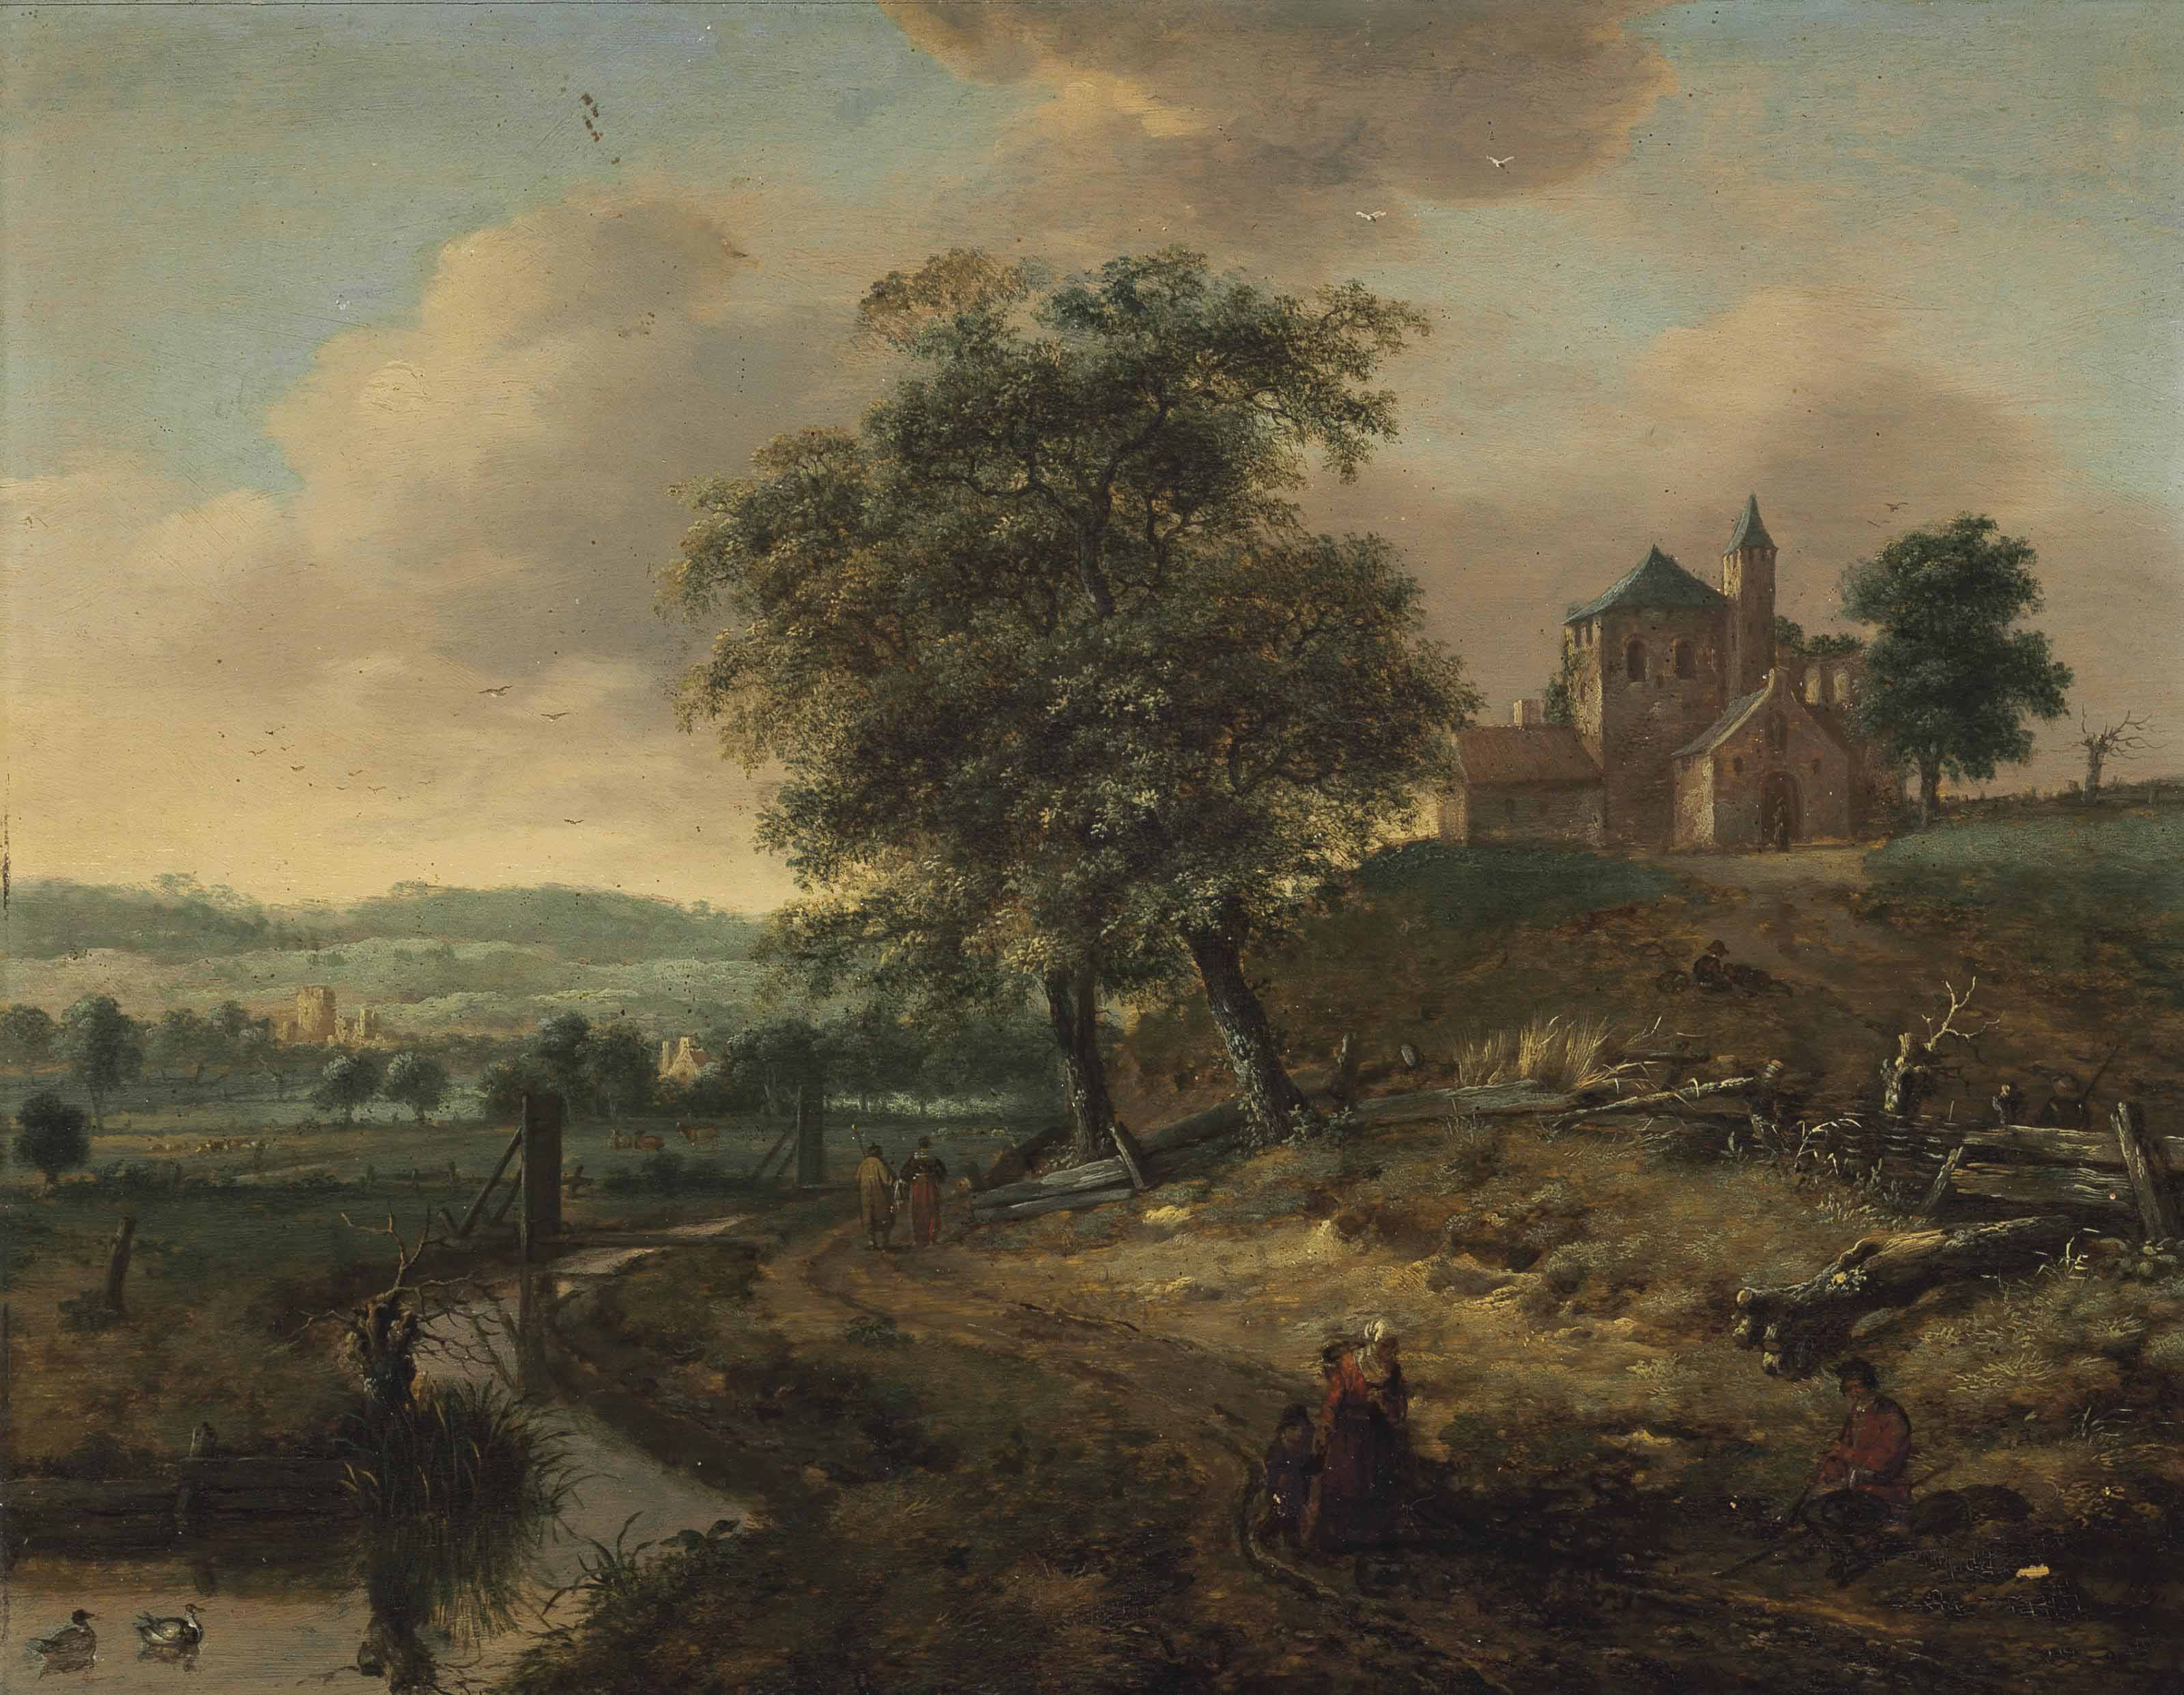 A landscape with travellers on a path by a stream and a medieval church